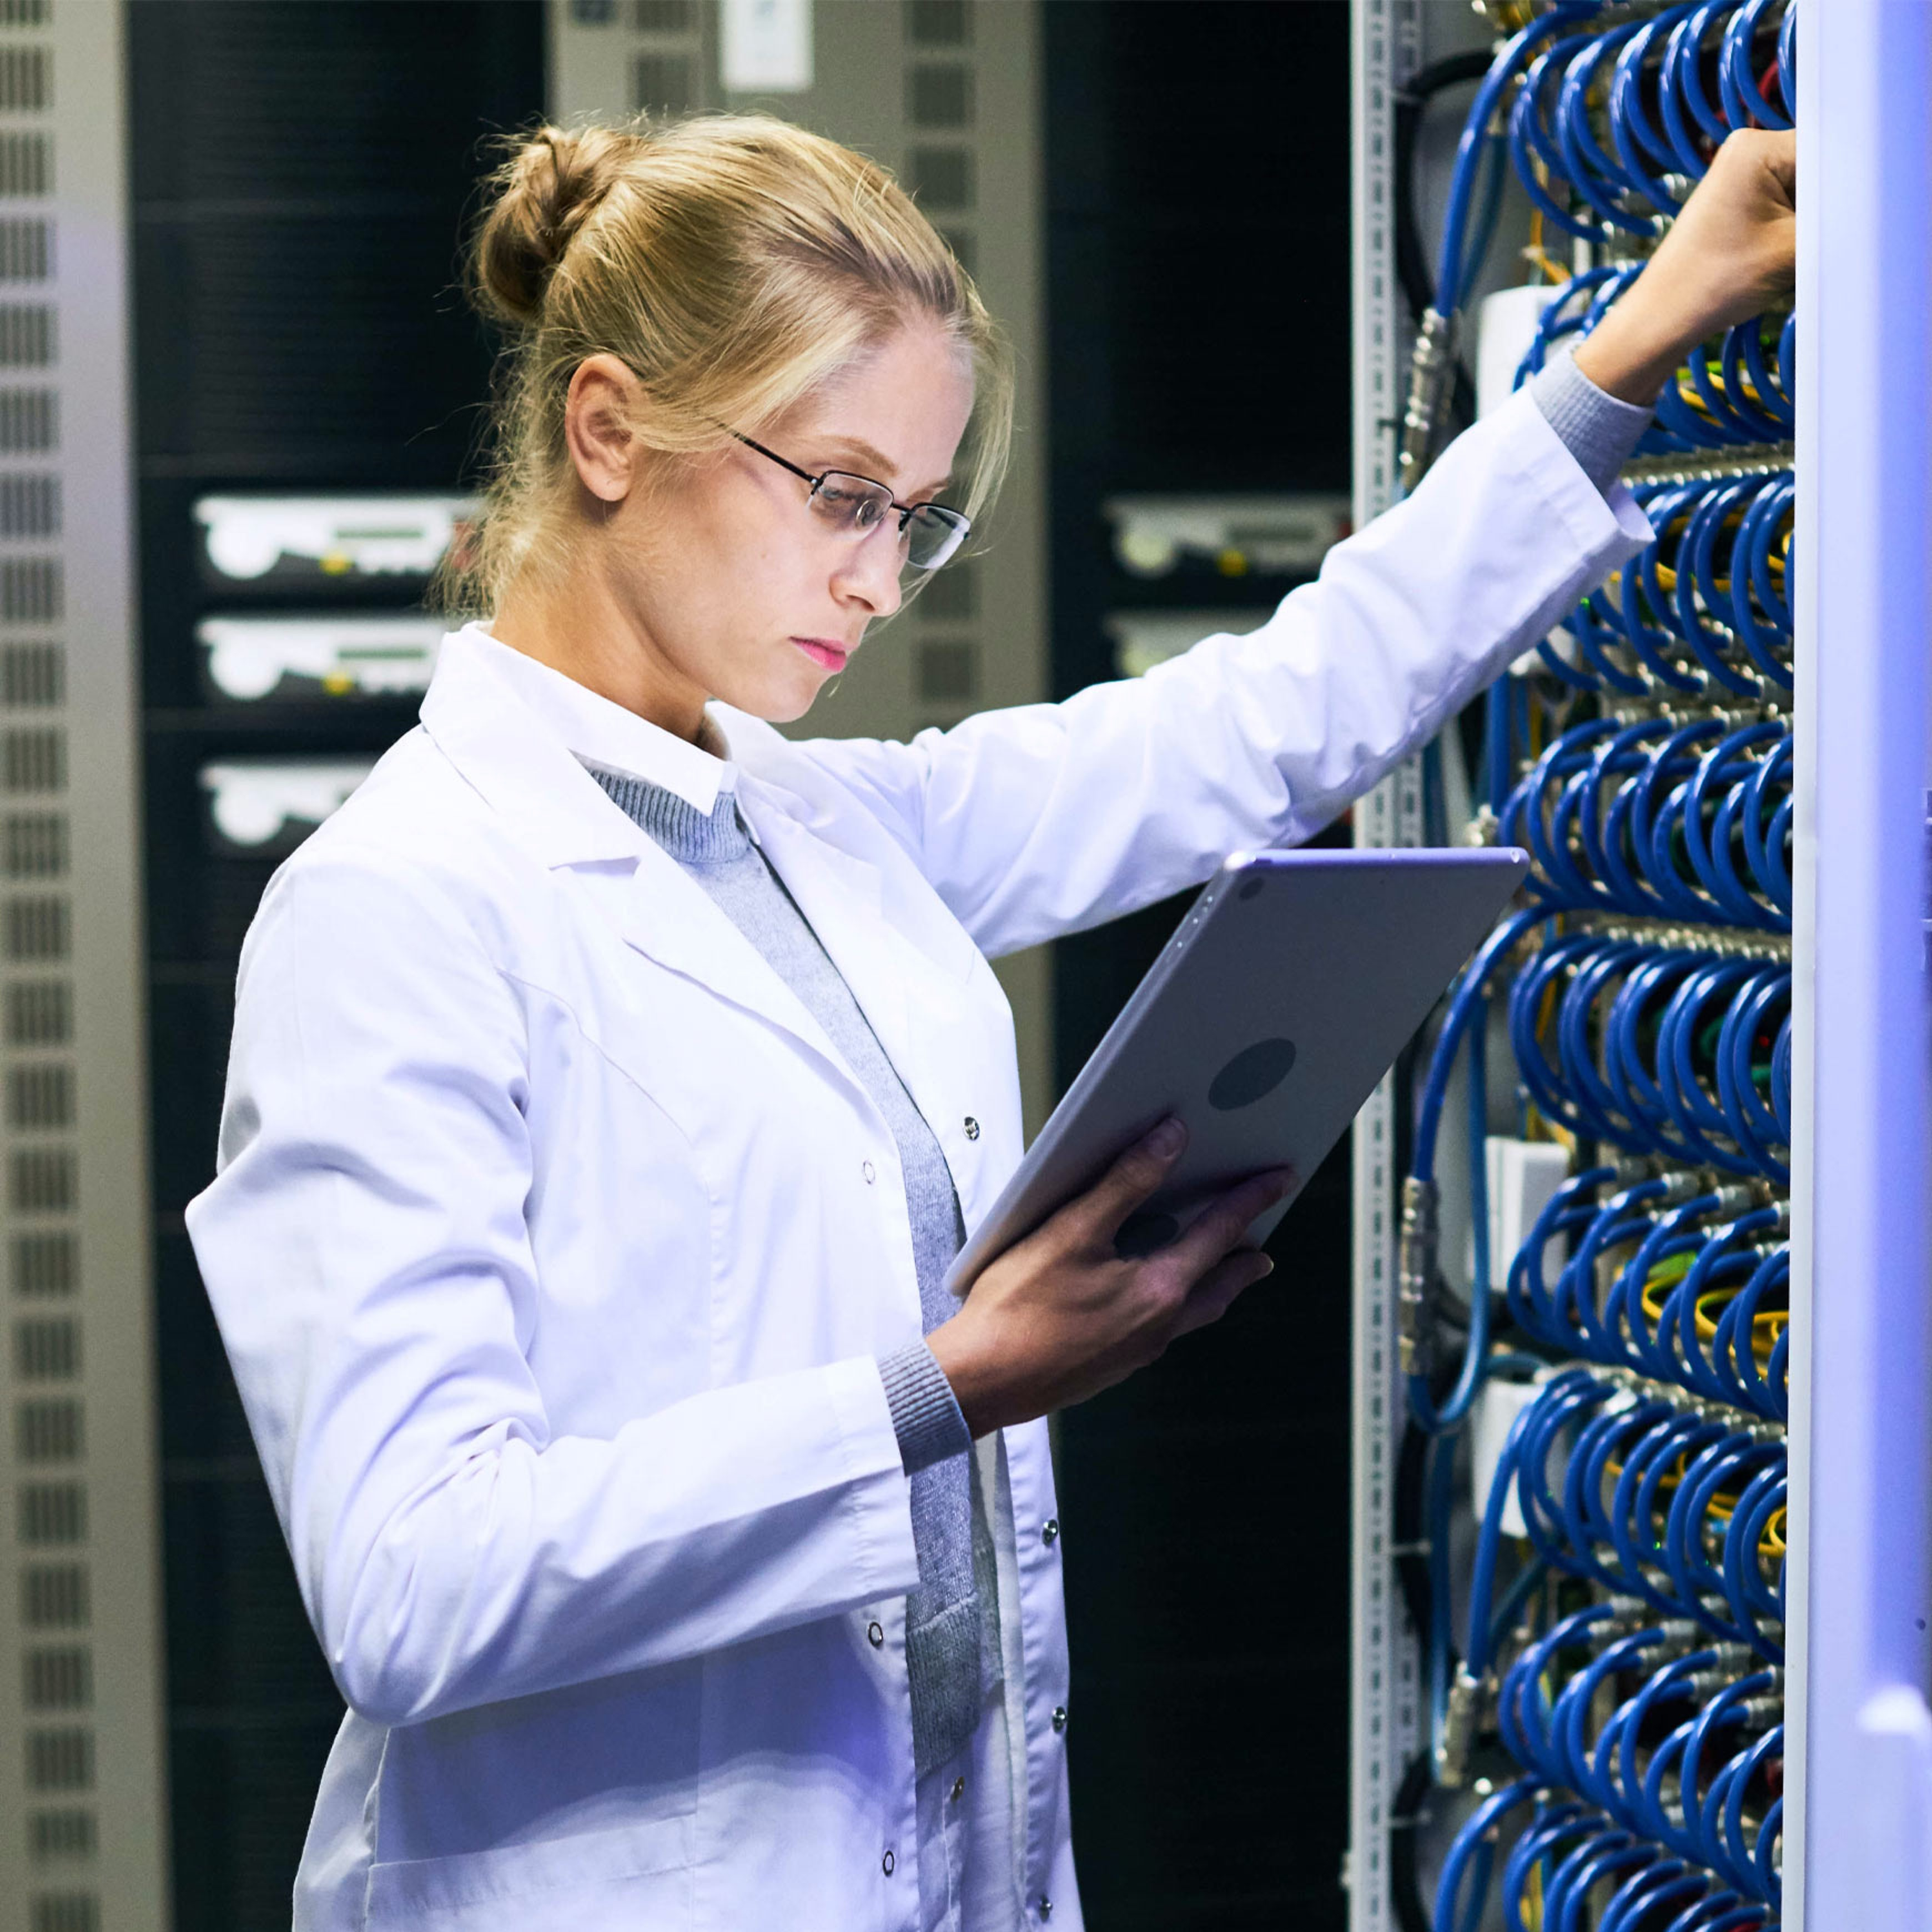 a female employee with a tablet tinkers with a server